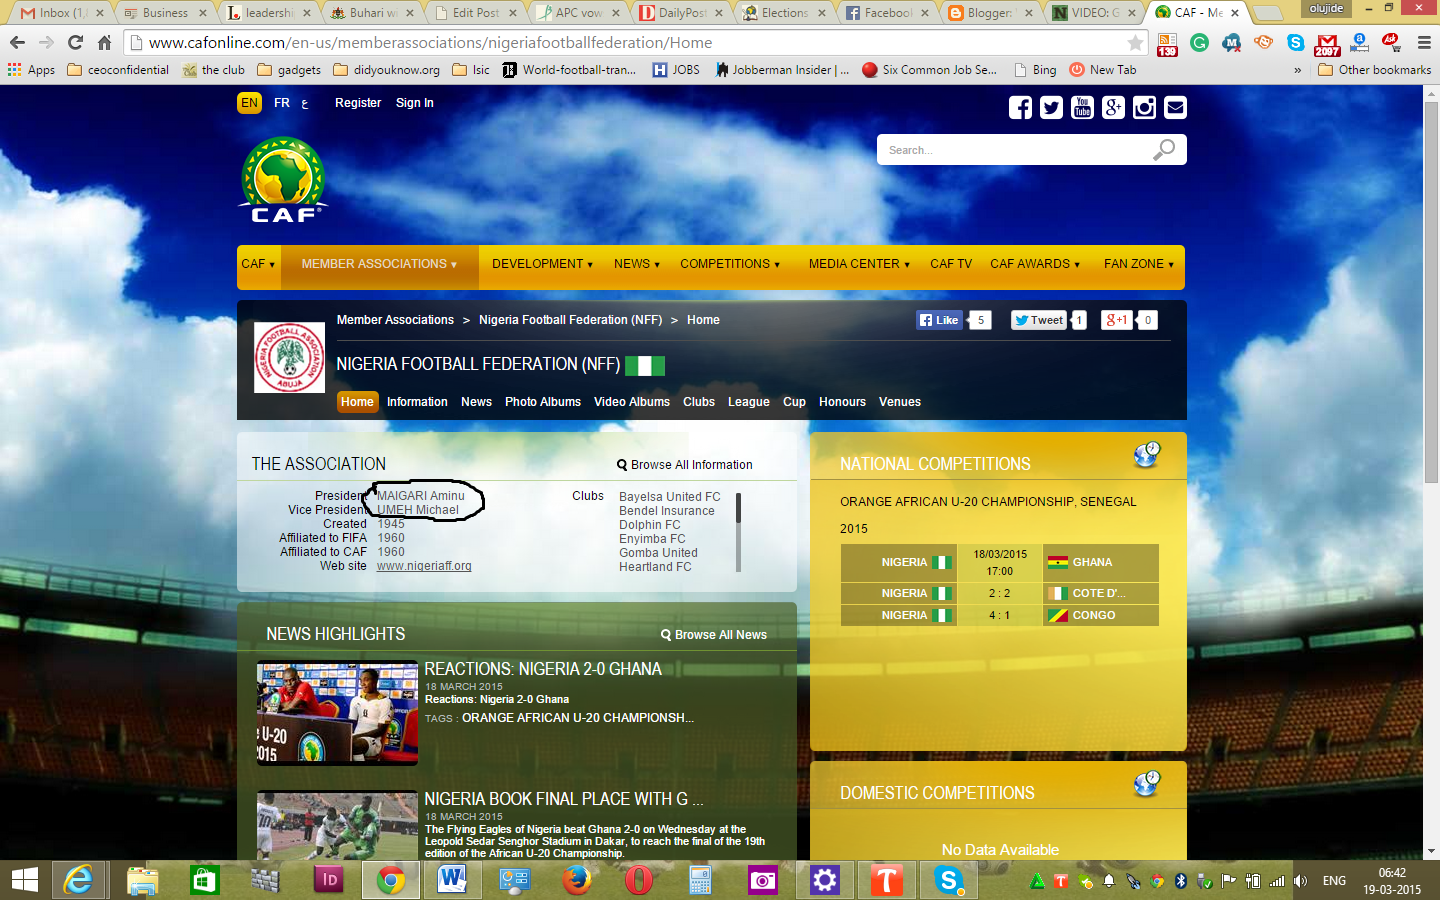 CAF Website Says NFF President is Aminu Maigari